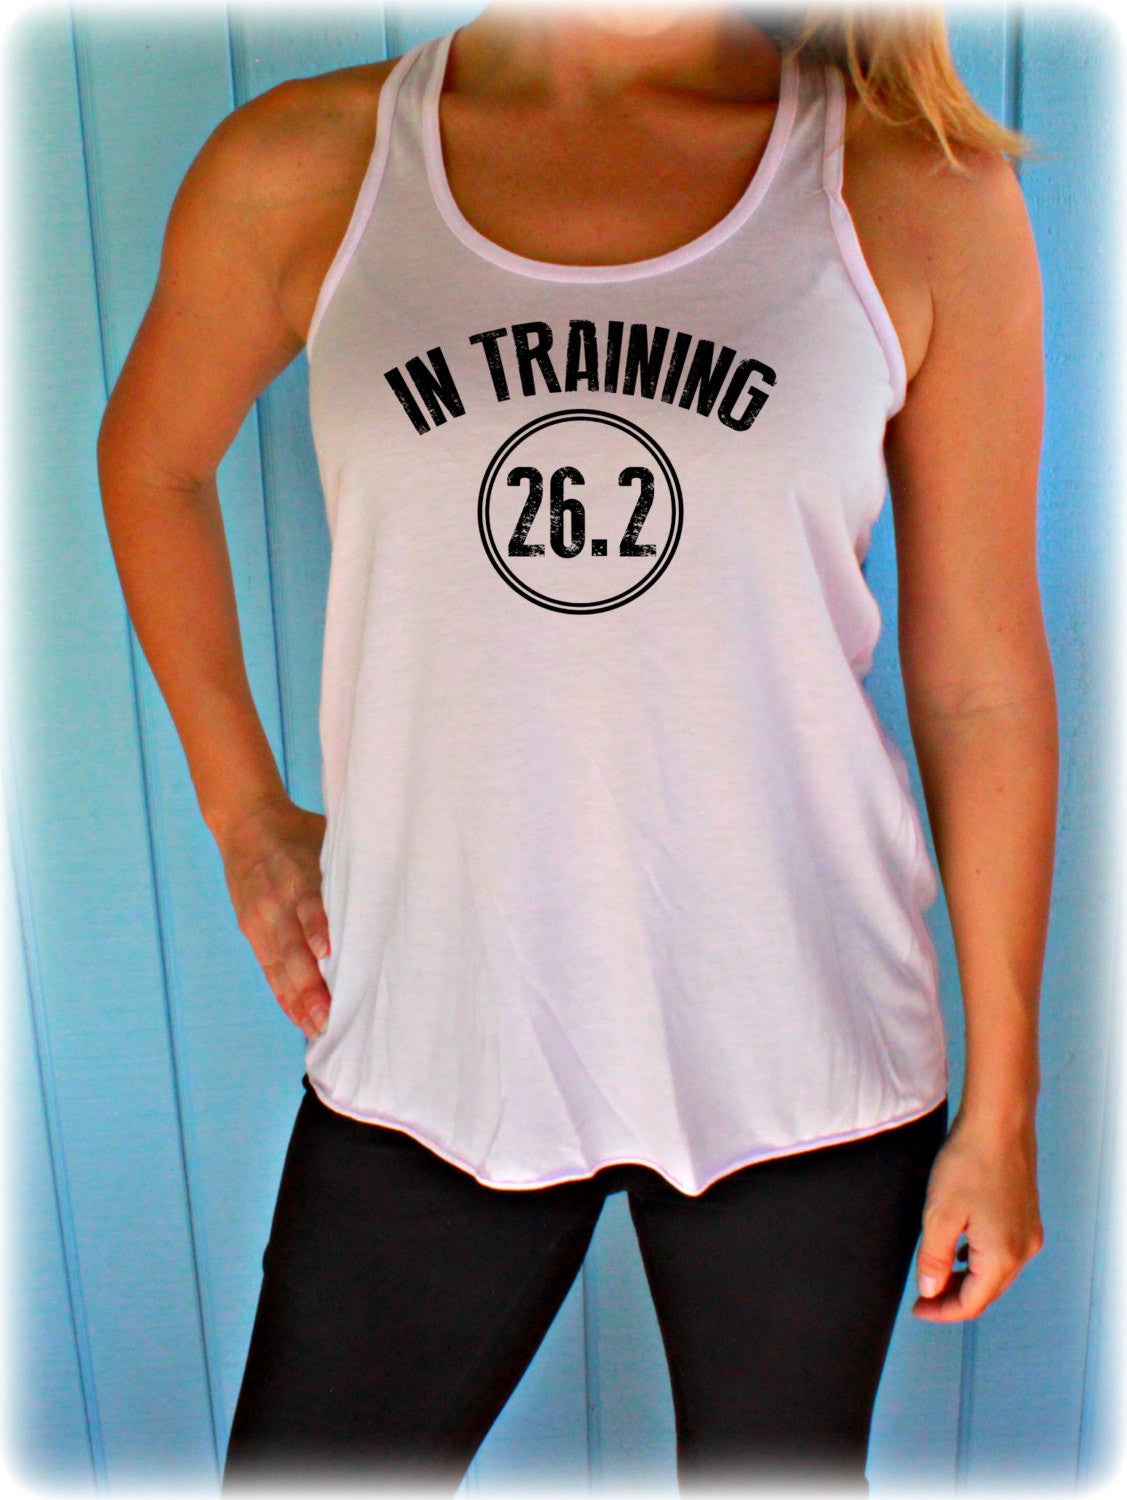 Womens Flowy Marathon Training Workout Tank Top. In Training 26.2. Fitness Motivation. Running Tank Top. Gift for Runner.